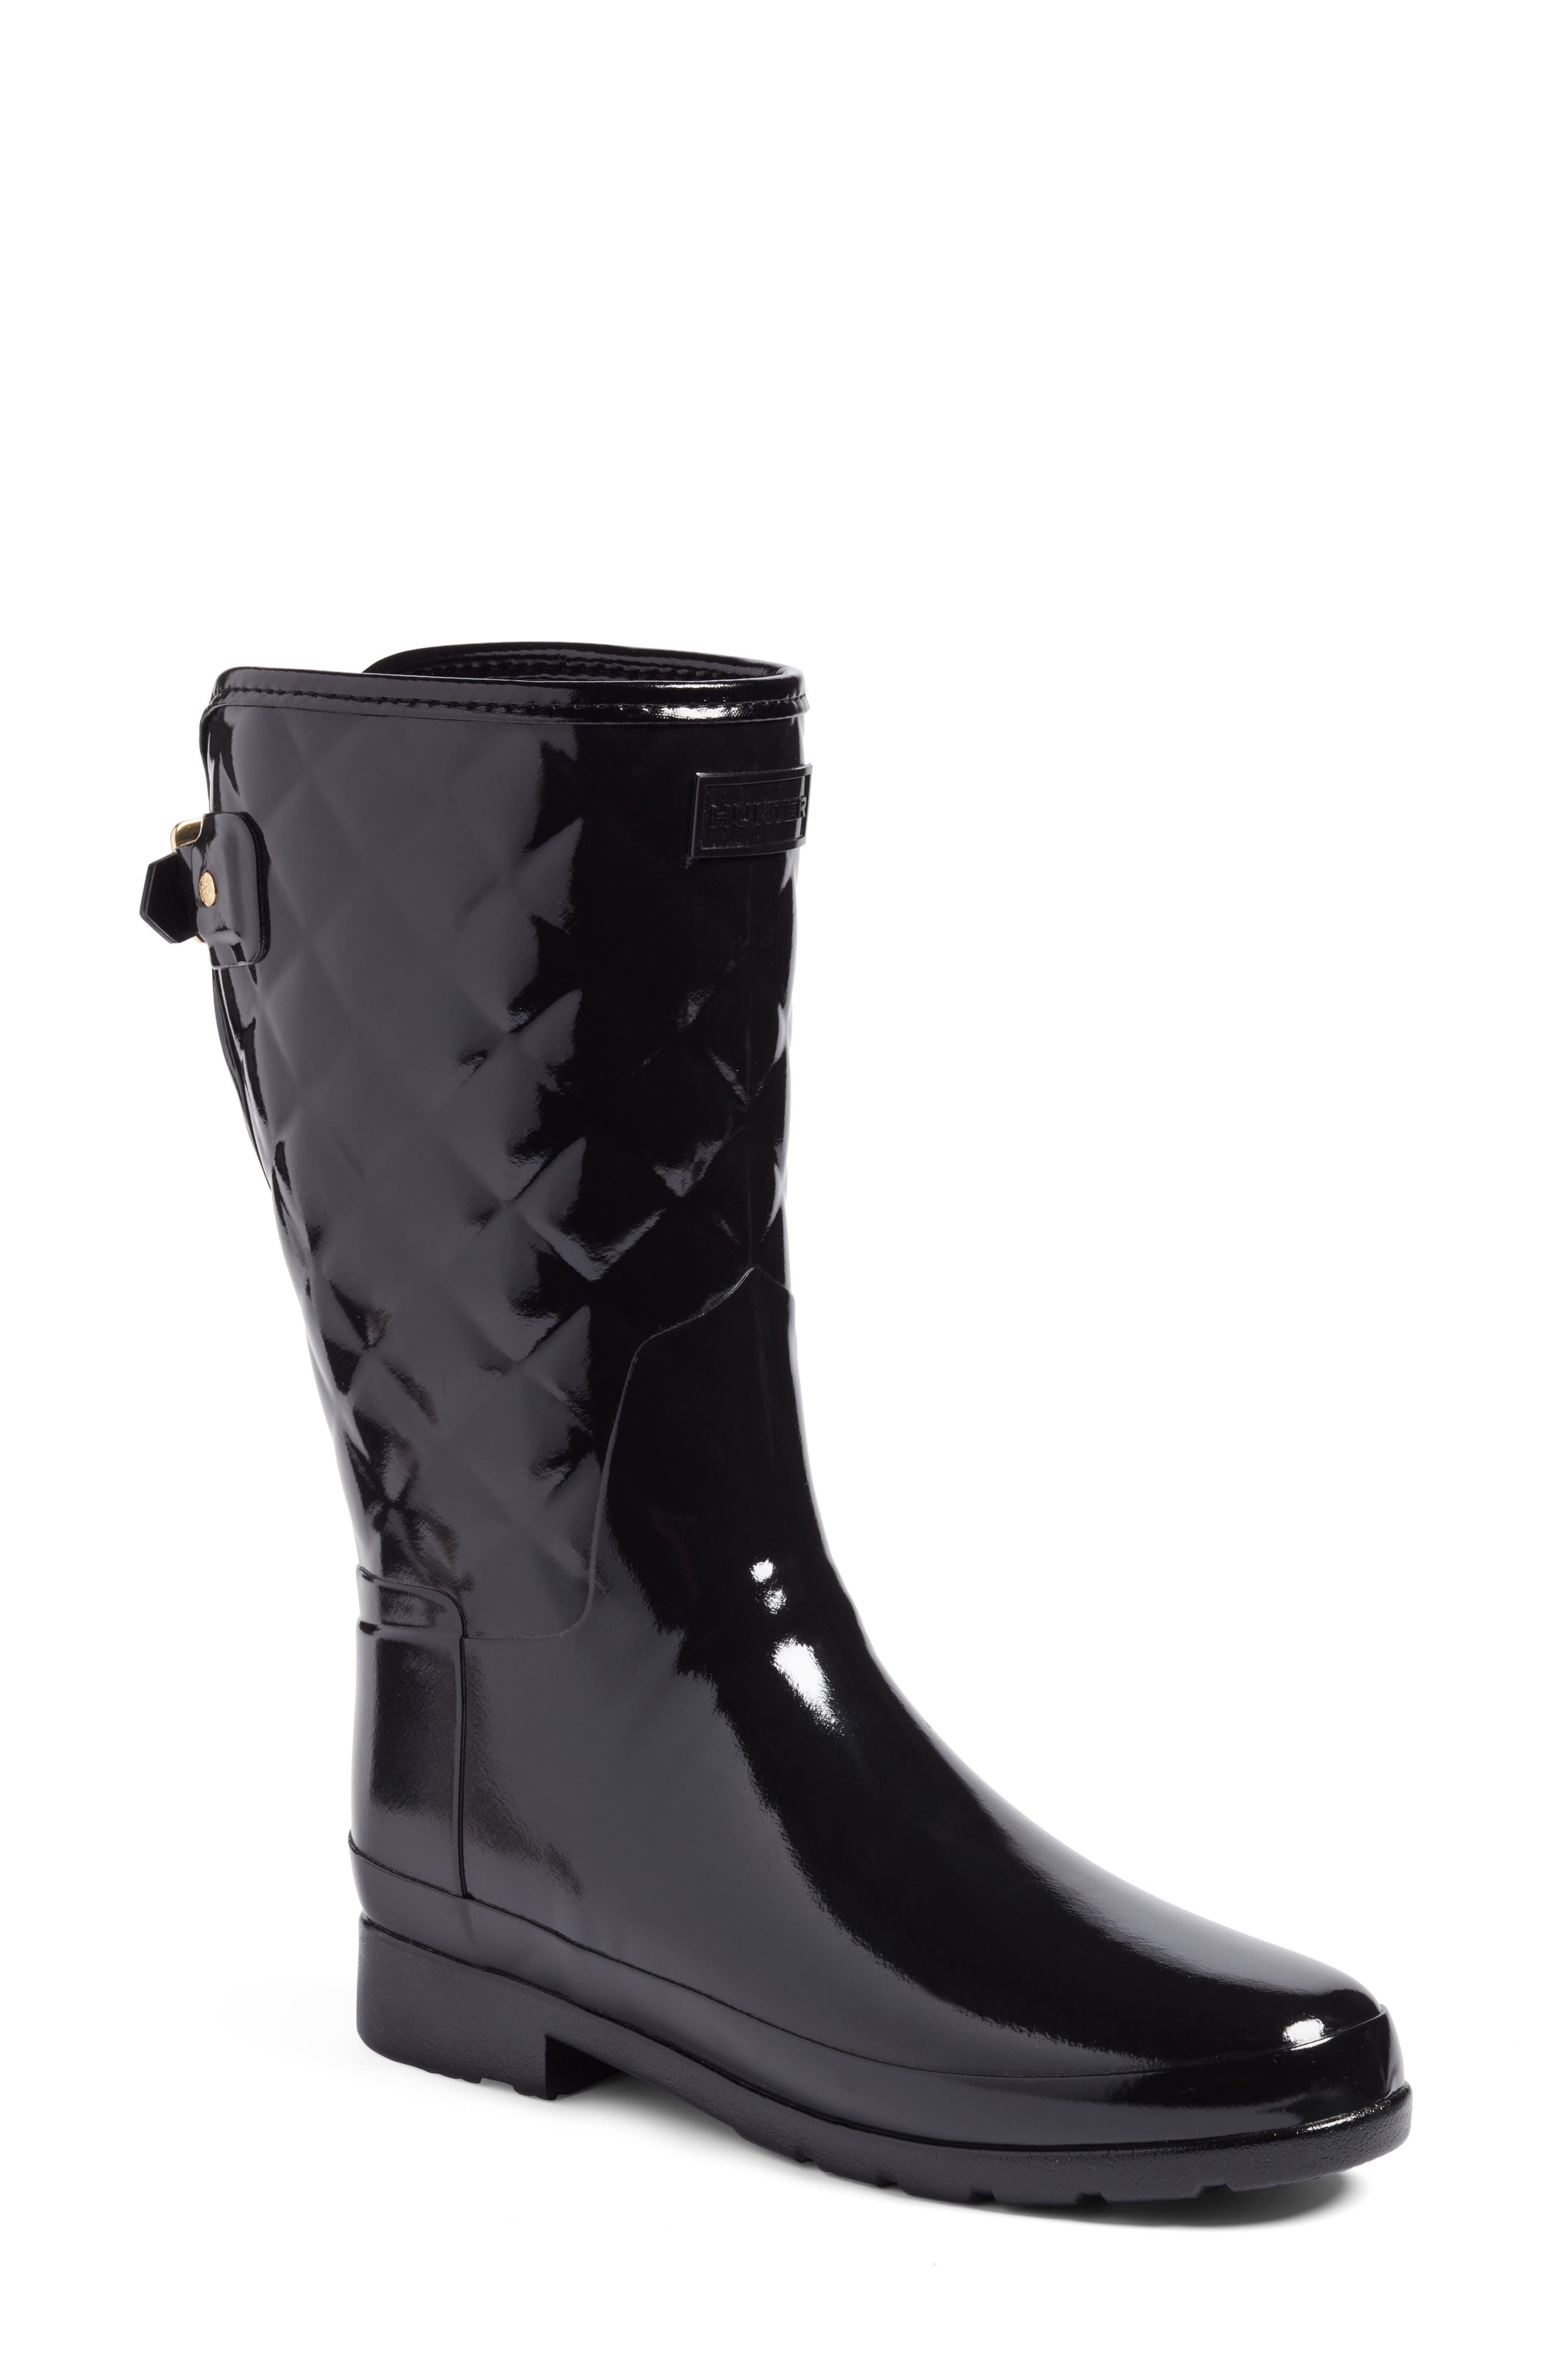 HUNTER Refined High Gloss Quilted Short Waterproof Rain Boot, Main, color, BLACK